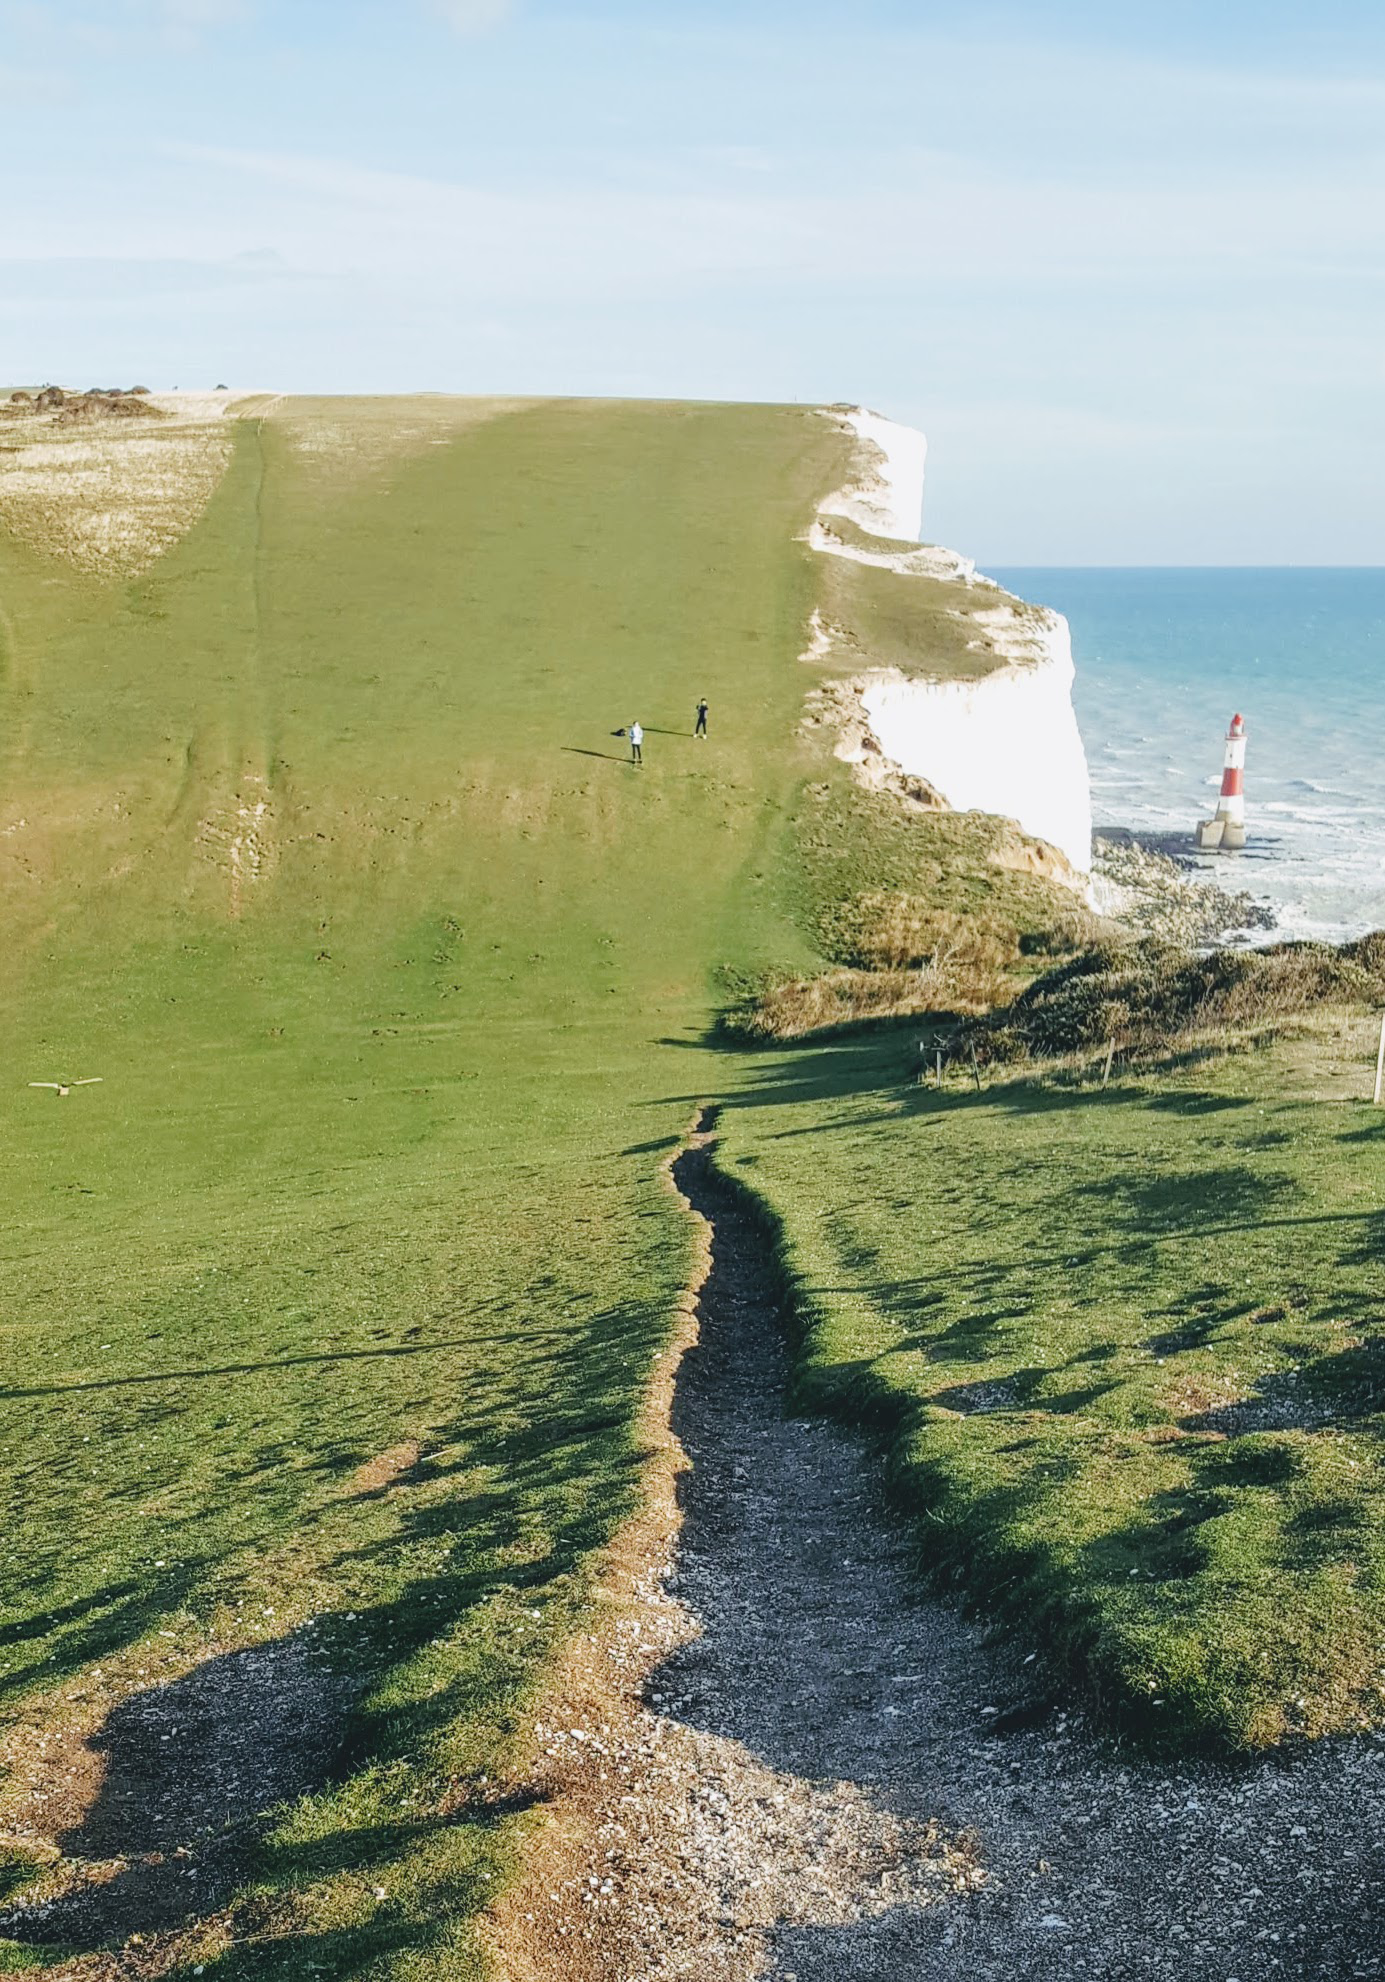 beachy head & lighthouse with footpath